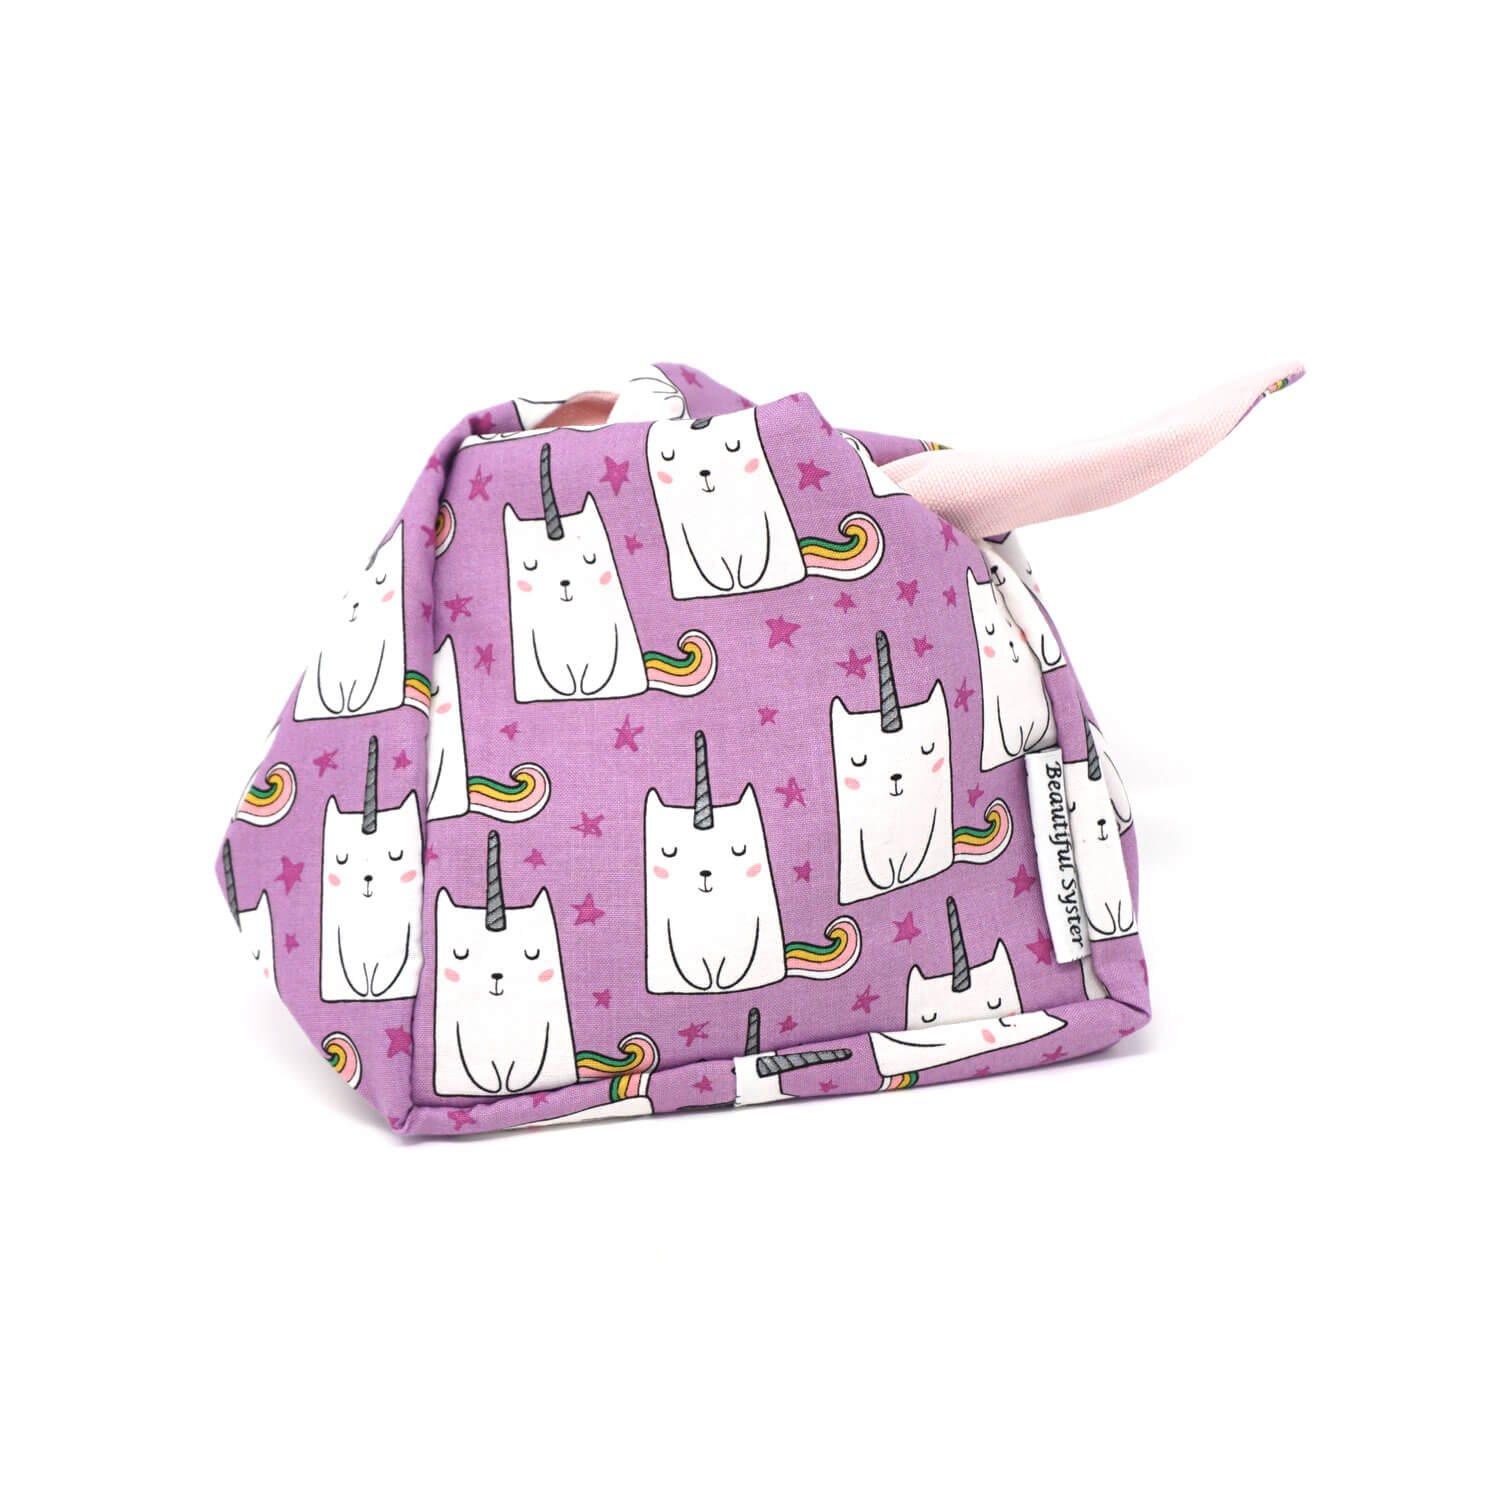 Heather Project Bag - Unikitty shown open | Yarn Worx